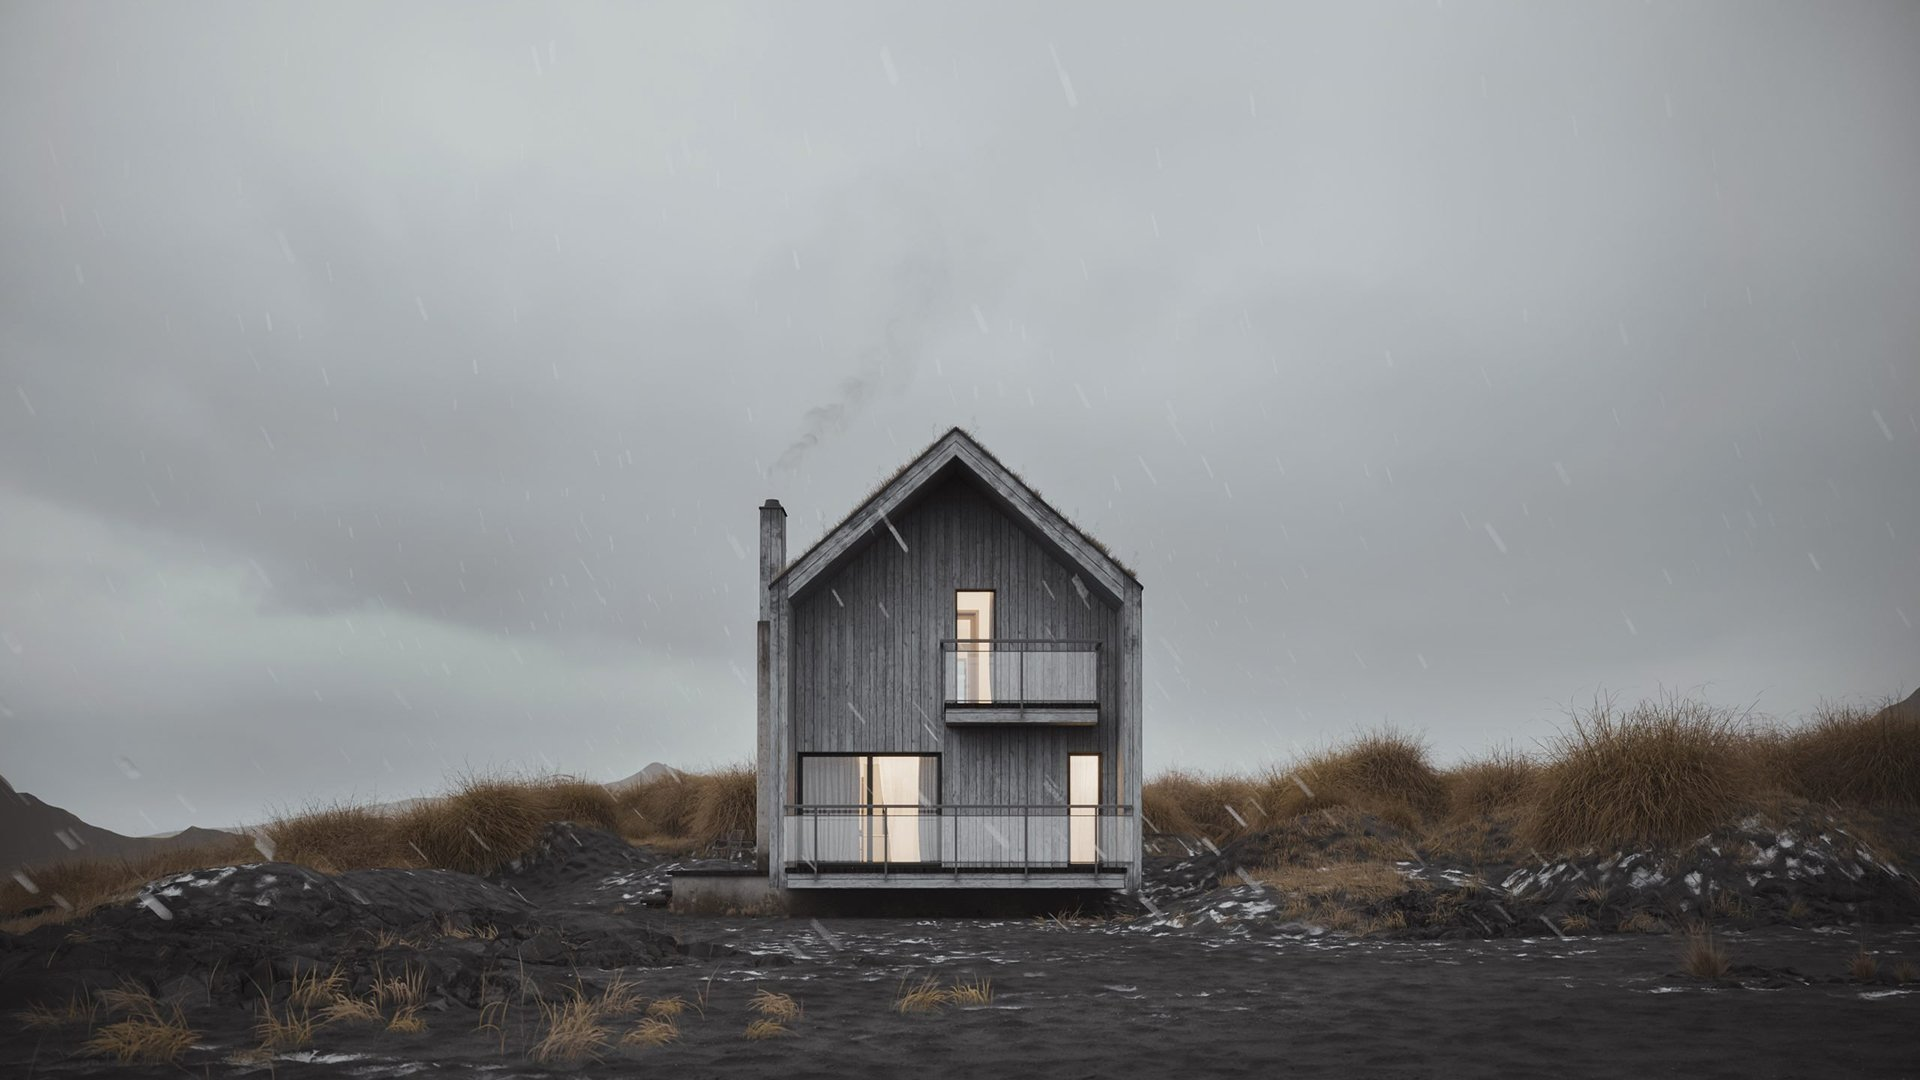 3D Exterior Visualization of a Wooden House in a Field